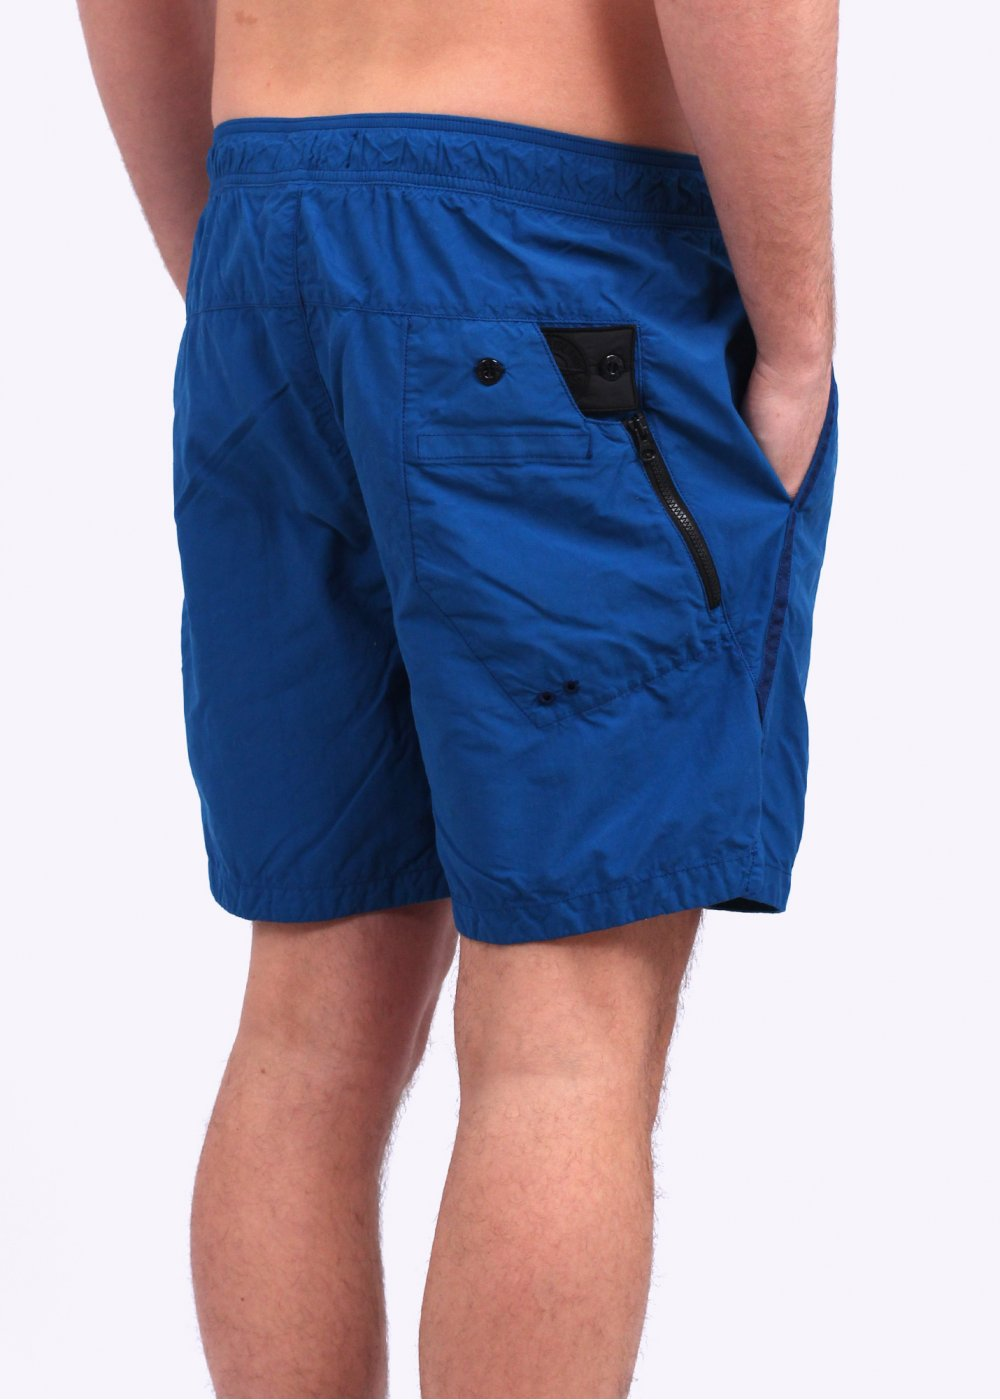 Get fashionable men's swimming shorts in our online section. Choose from fashionable styles, designed by top brands and make a splash in your swimming shorts.